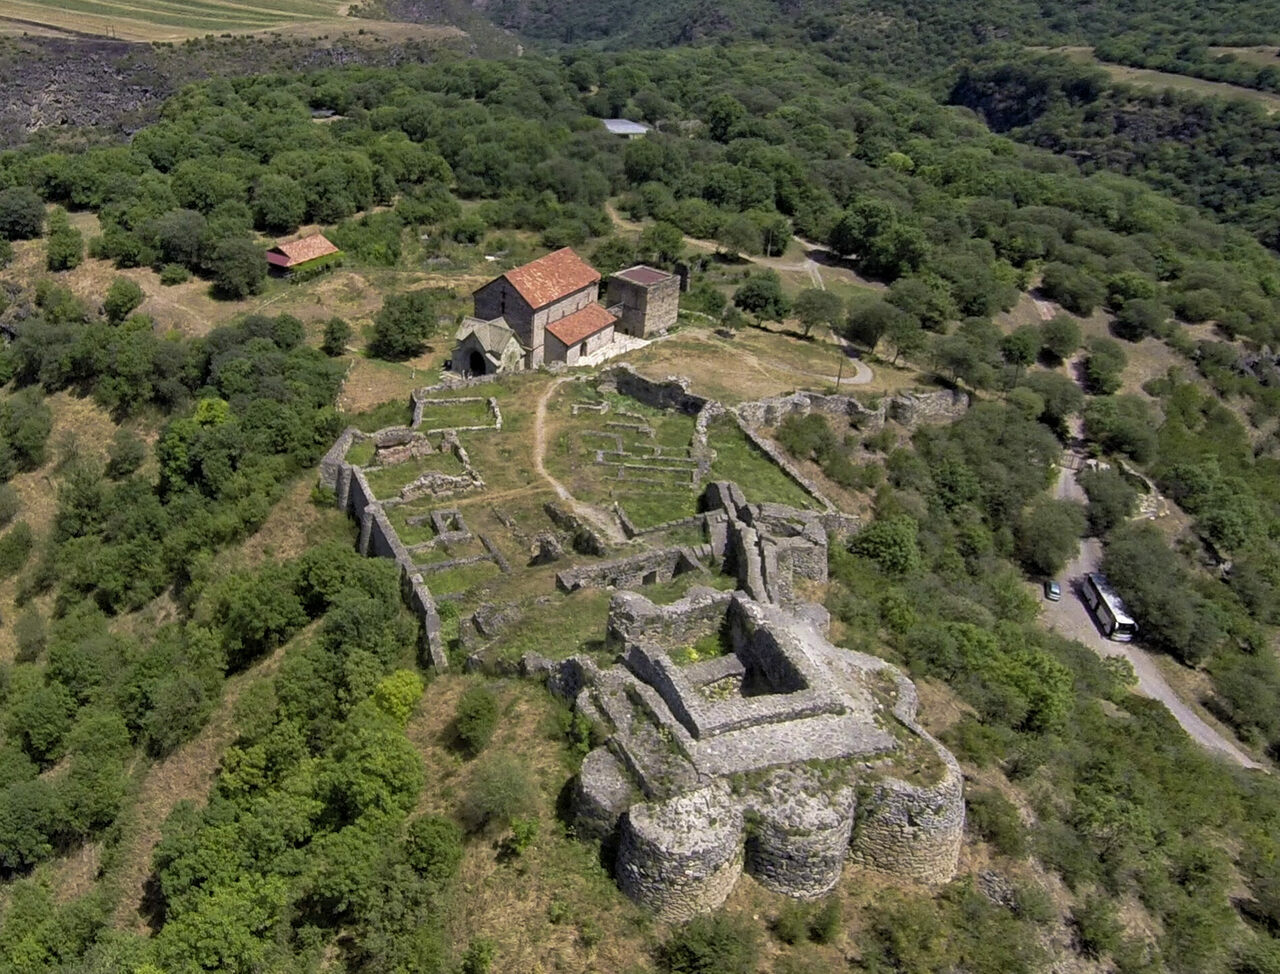 Viewed from overhead, the promontory of Dmanisi includes medieval and Bronze Age ruins, a working monastery, and a small but rich fossil site.